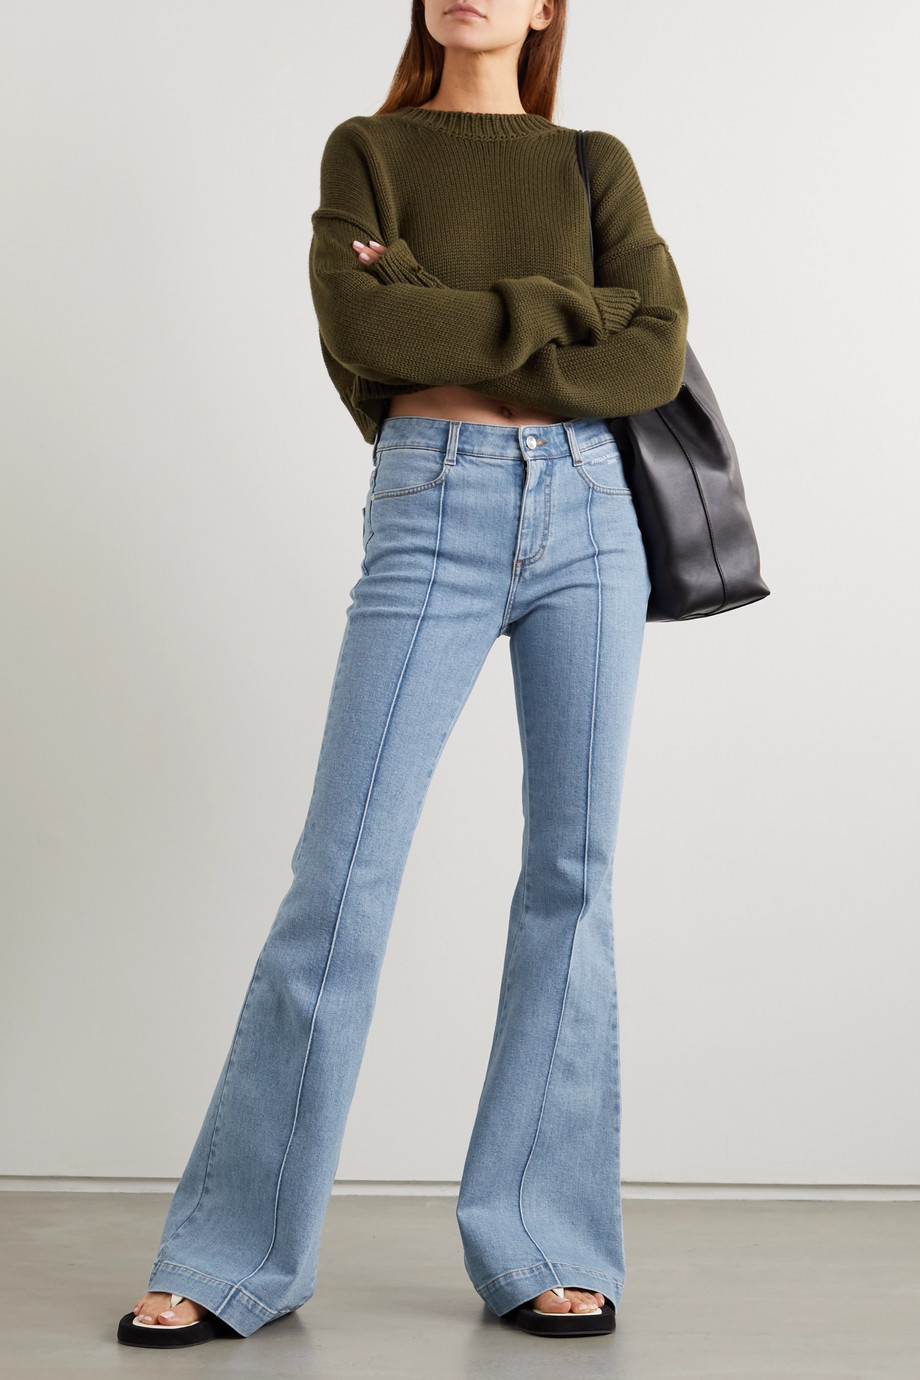 Stella McCartney + NET SUSTAIN The '70s high-rise flared jeans